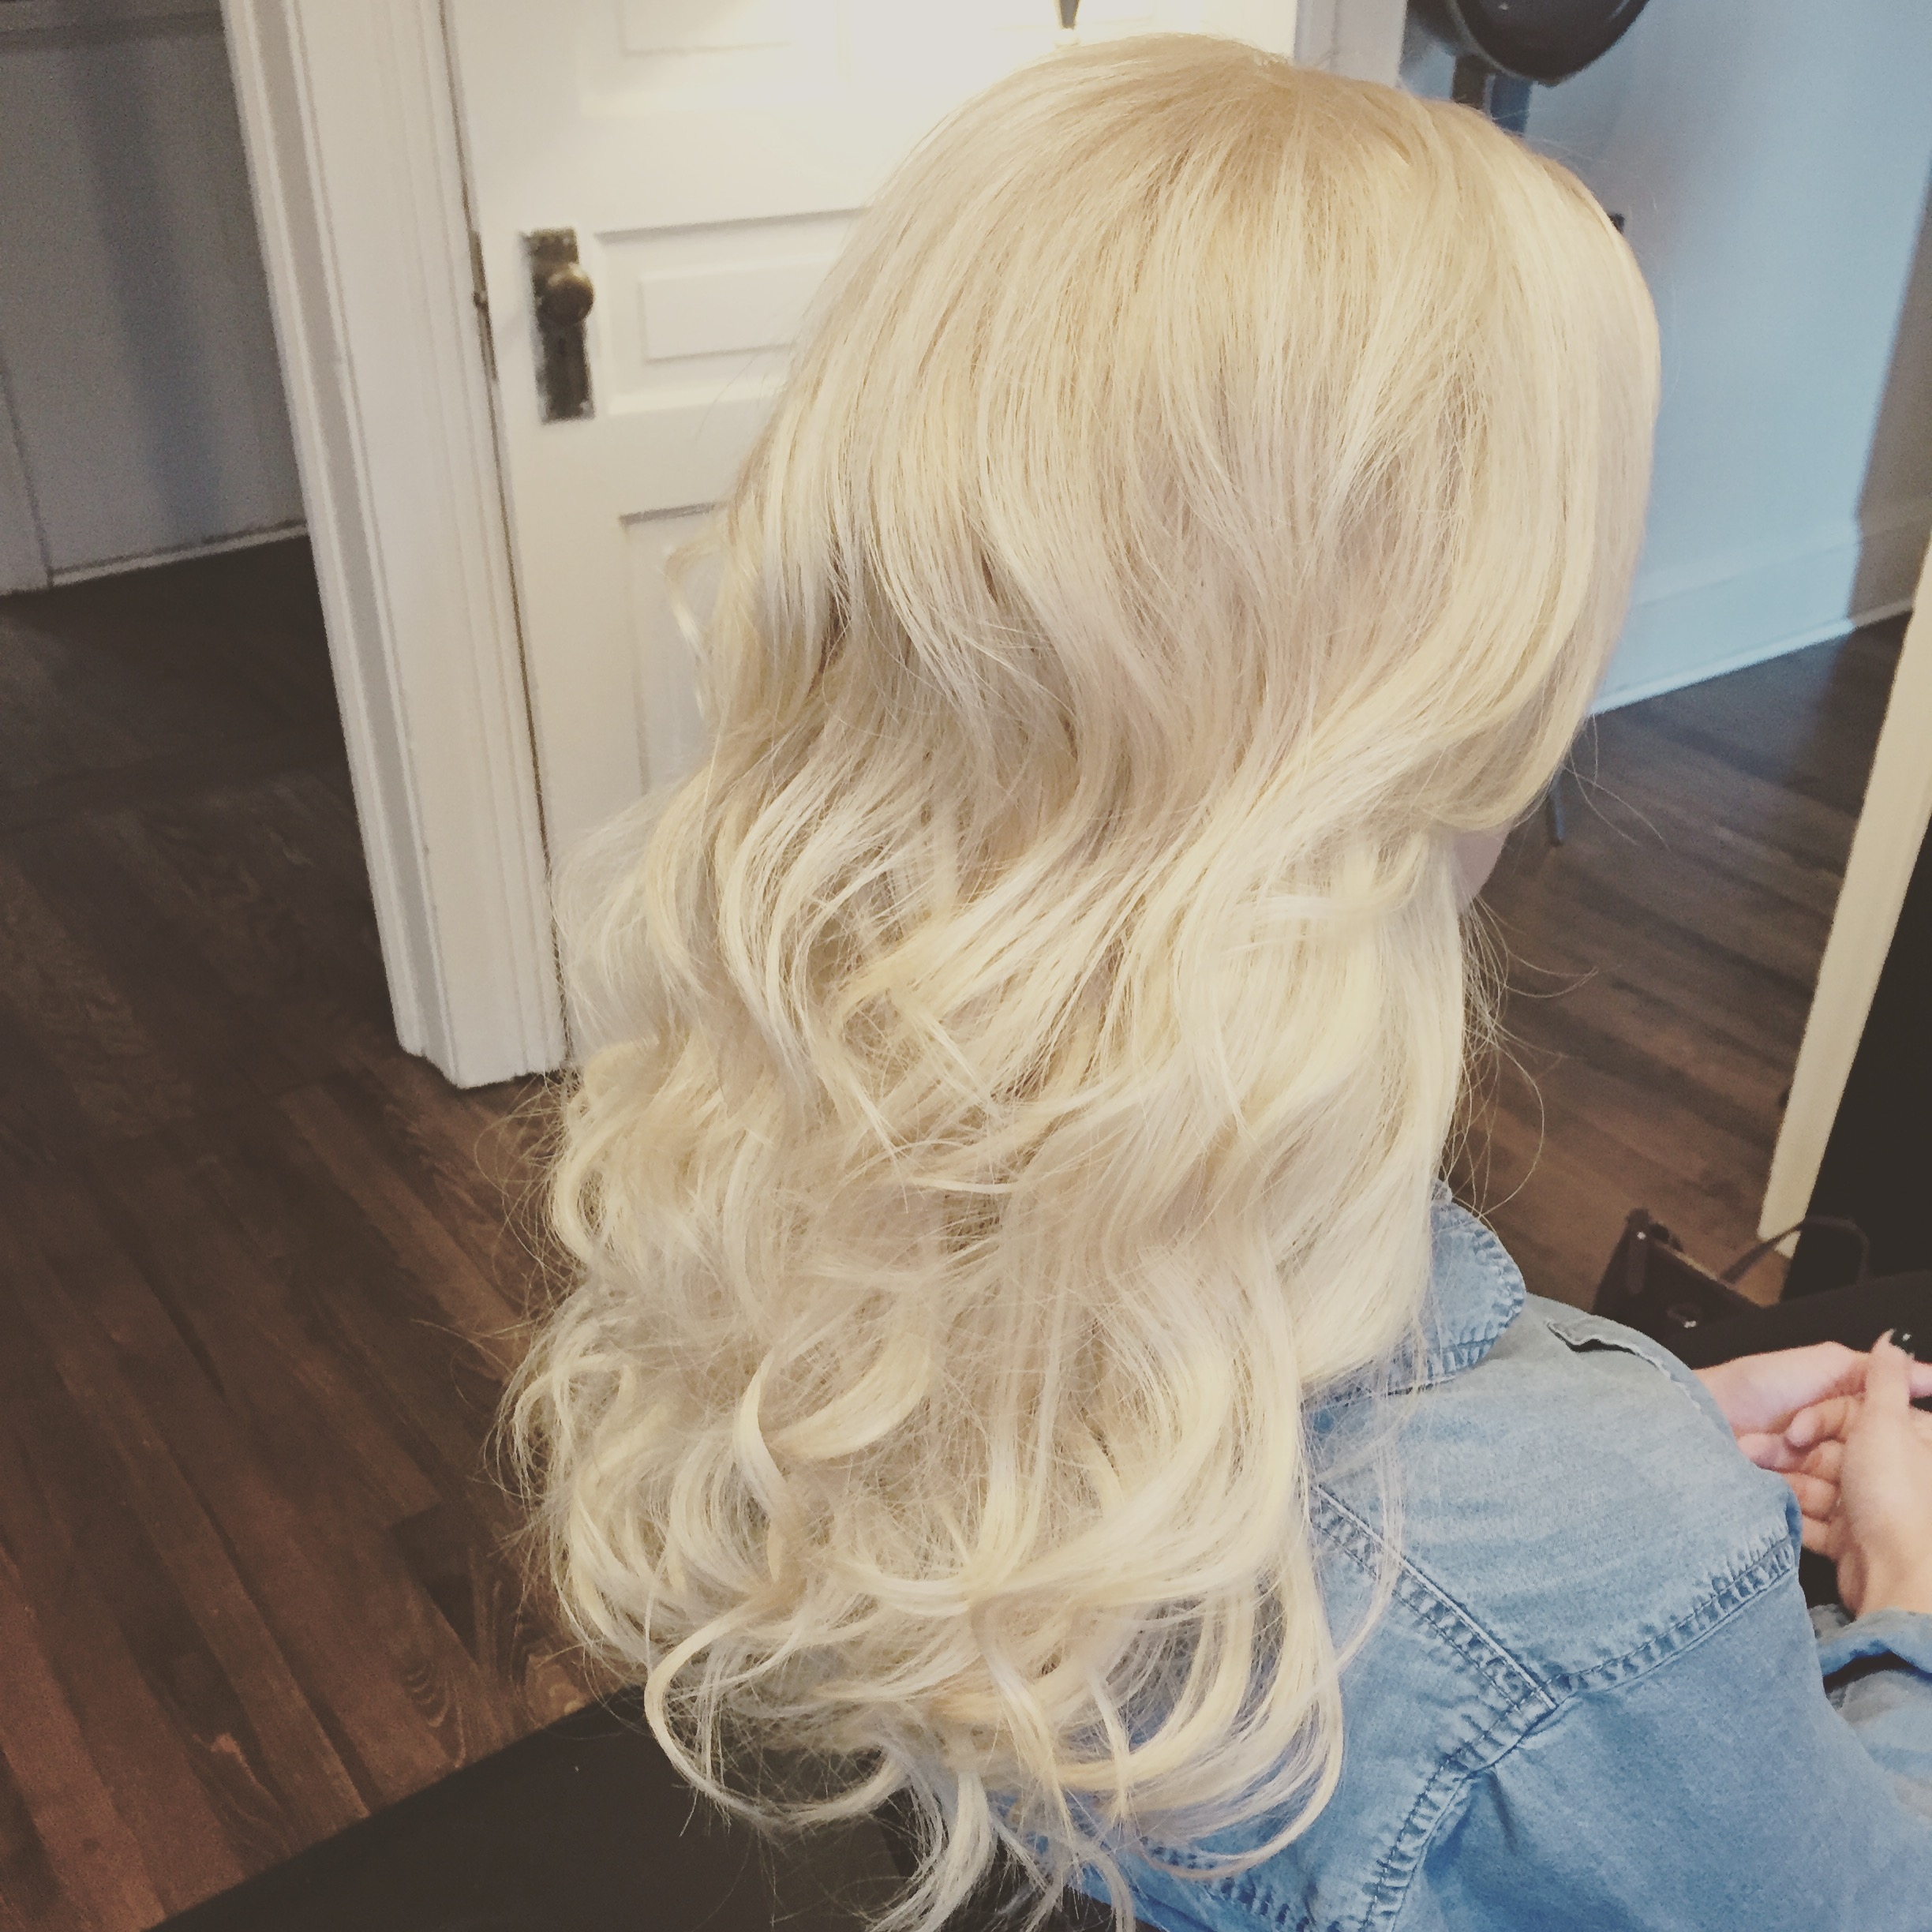 Hair Extensions at Salon Veritas in Downtown Raleigh NC